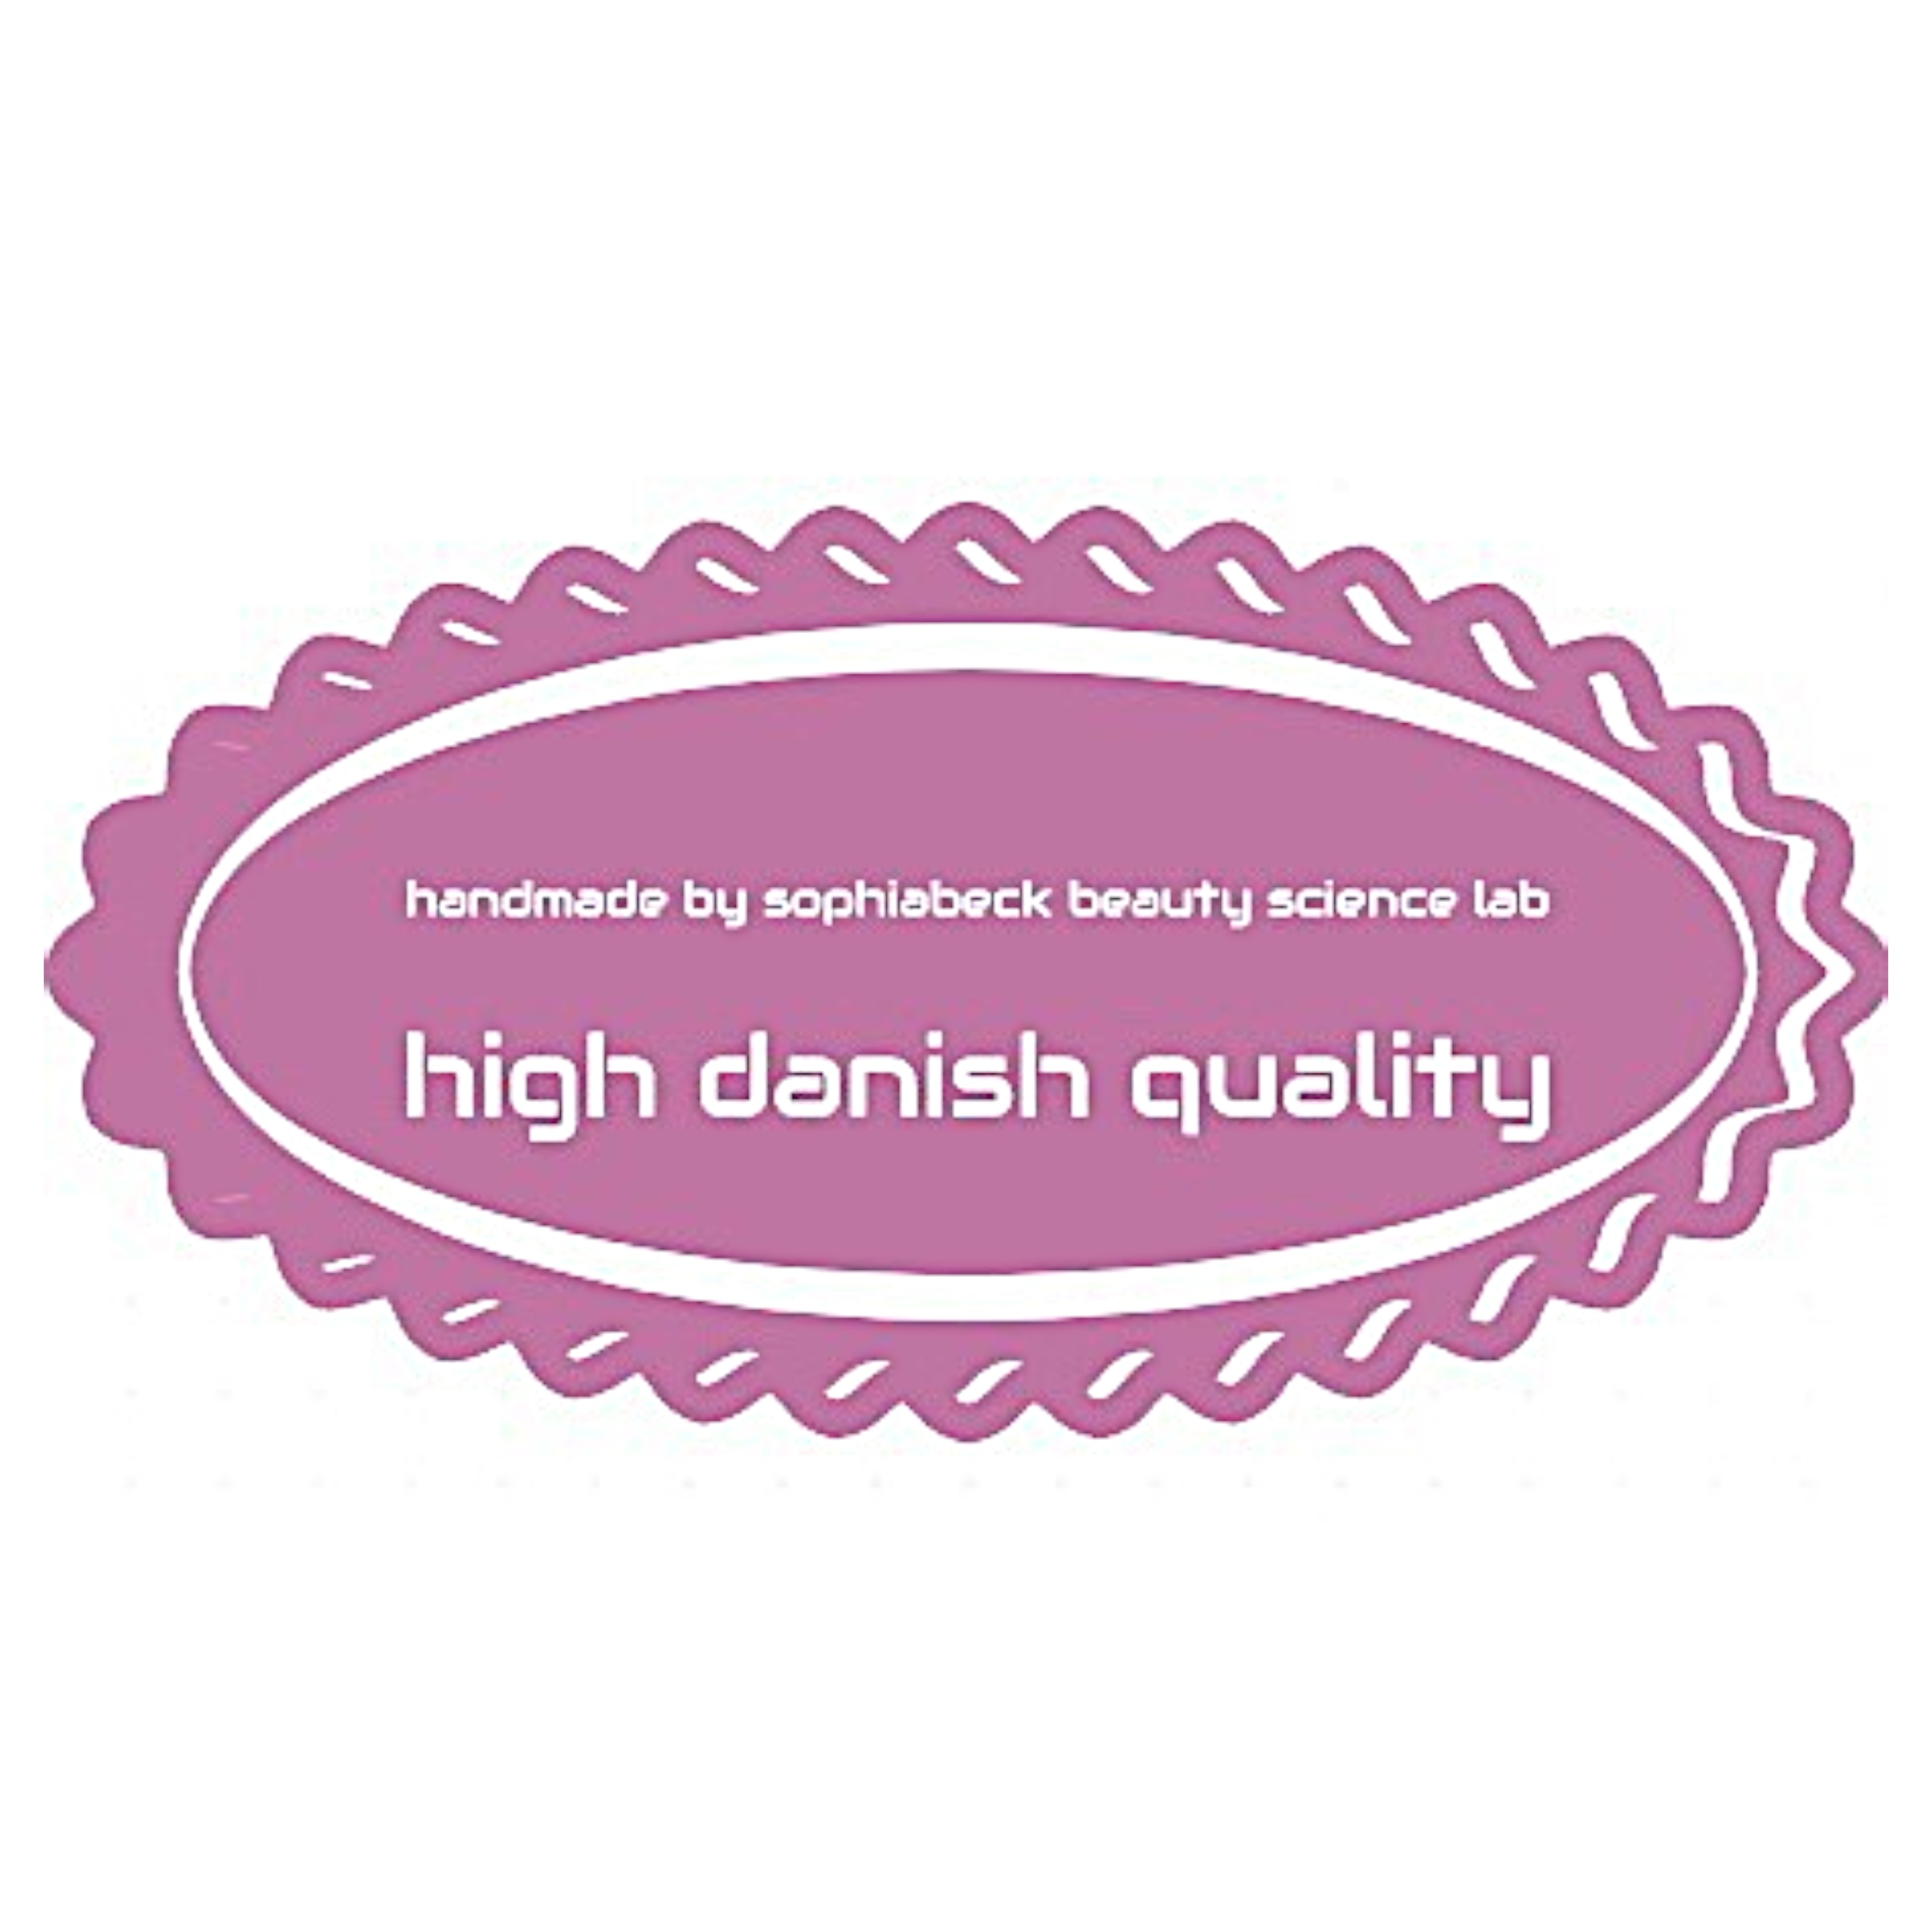 high danish quality